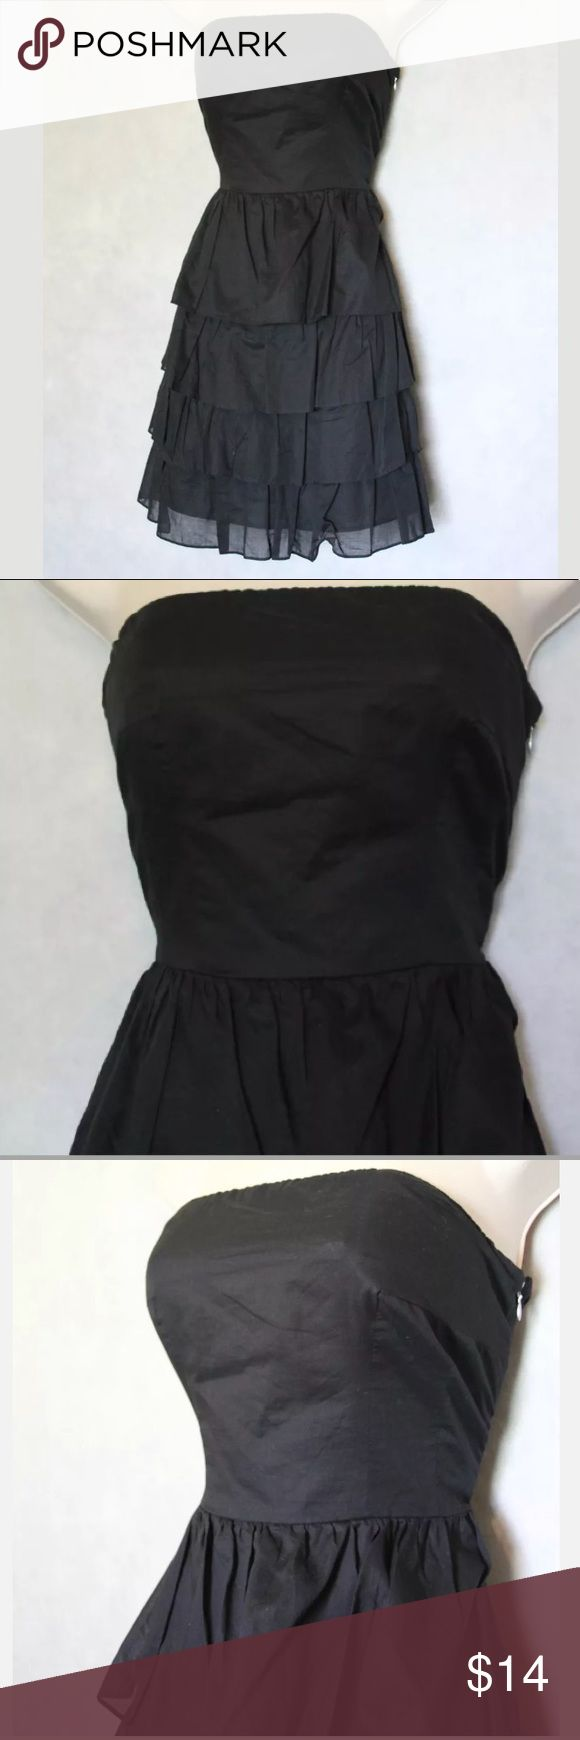 MAKE AN OFFER‼️Express Party Dress Size 12 Express Dress Women's Size 12 Solid Black Ruffle Tiers Strapless Side Zipper Great Condition! No Stains or Tears! Cute Dress!   Measurements: Bust: 16 1/2 in Length: 28 in Express Dresses Strapless